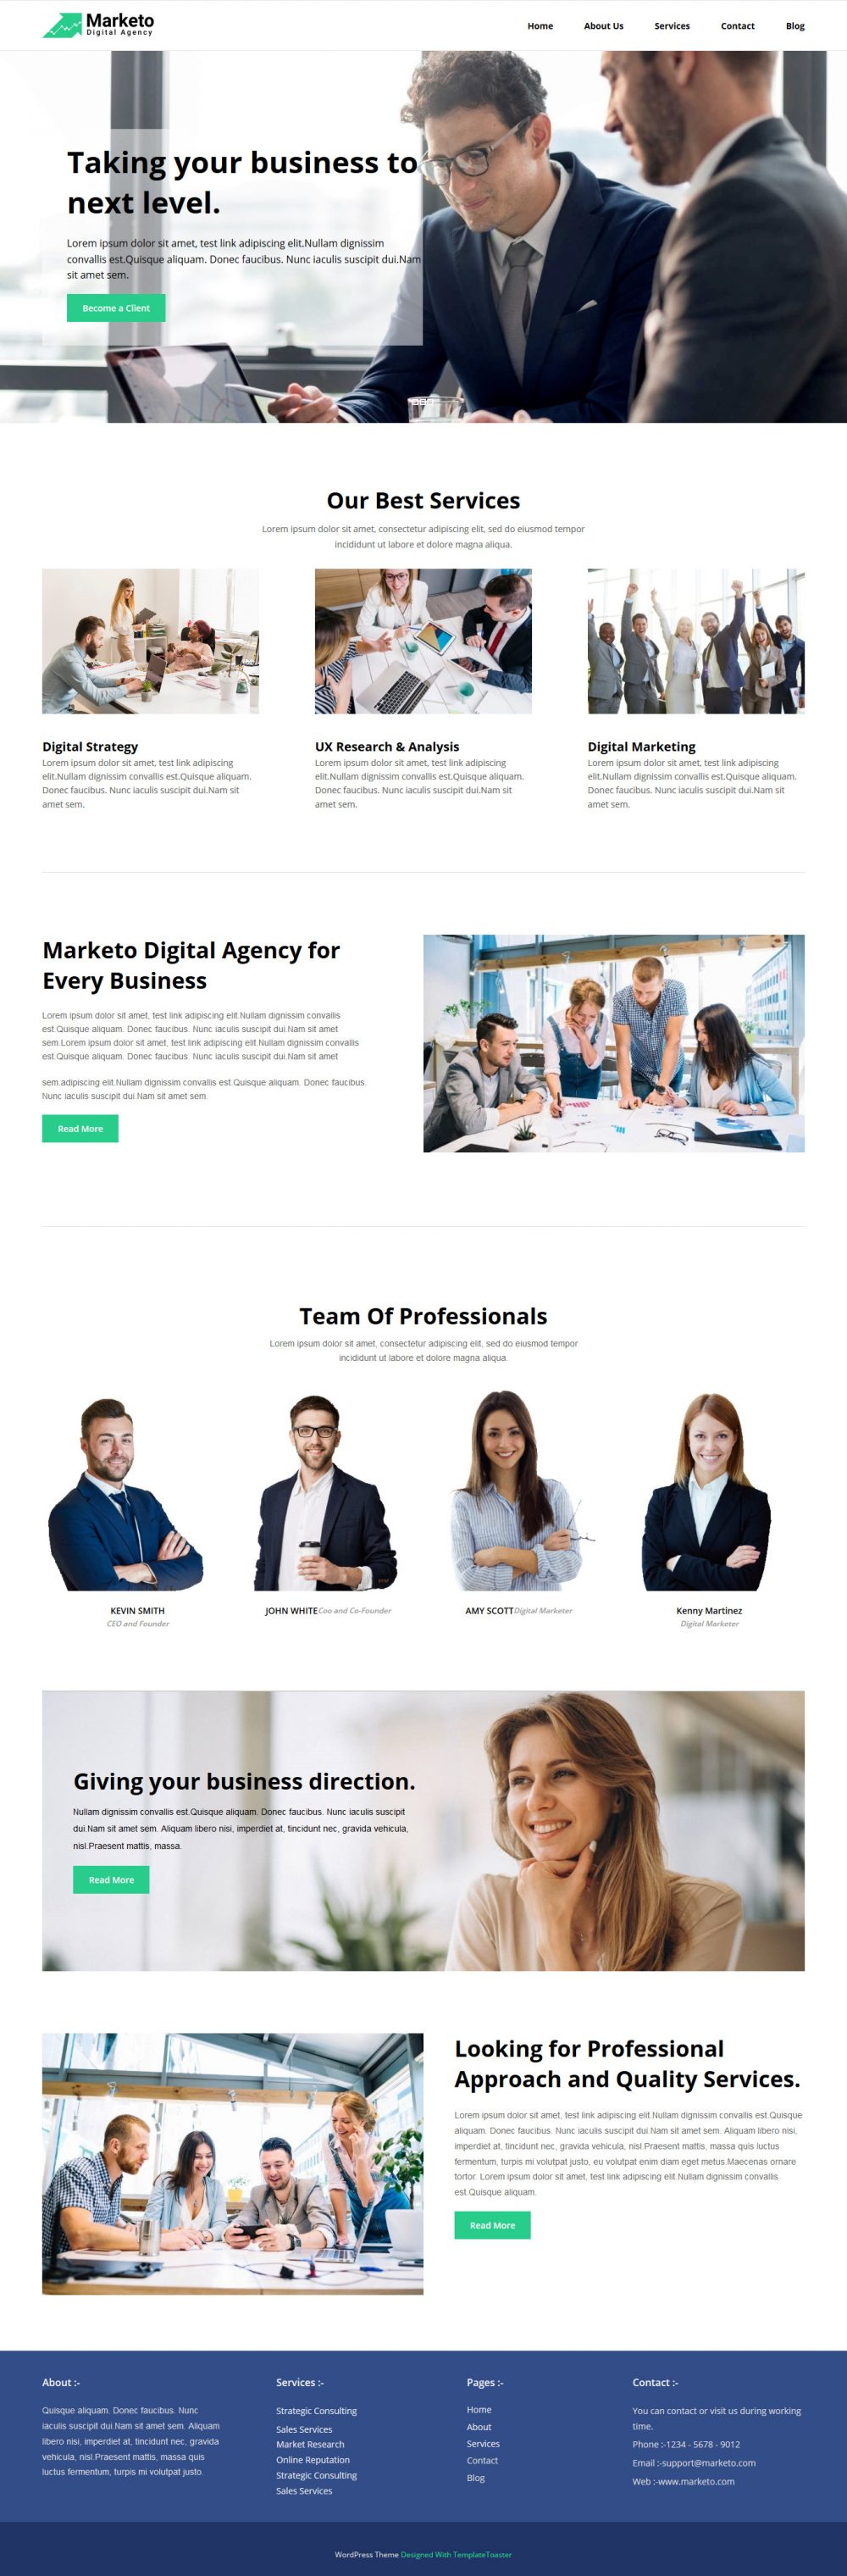 Marketo Marketing Consultancy Services Free Joomla Template